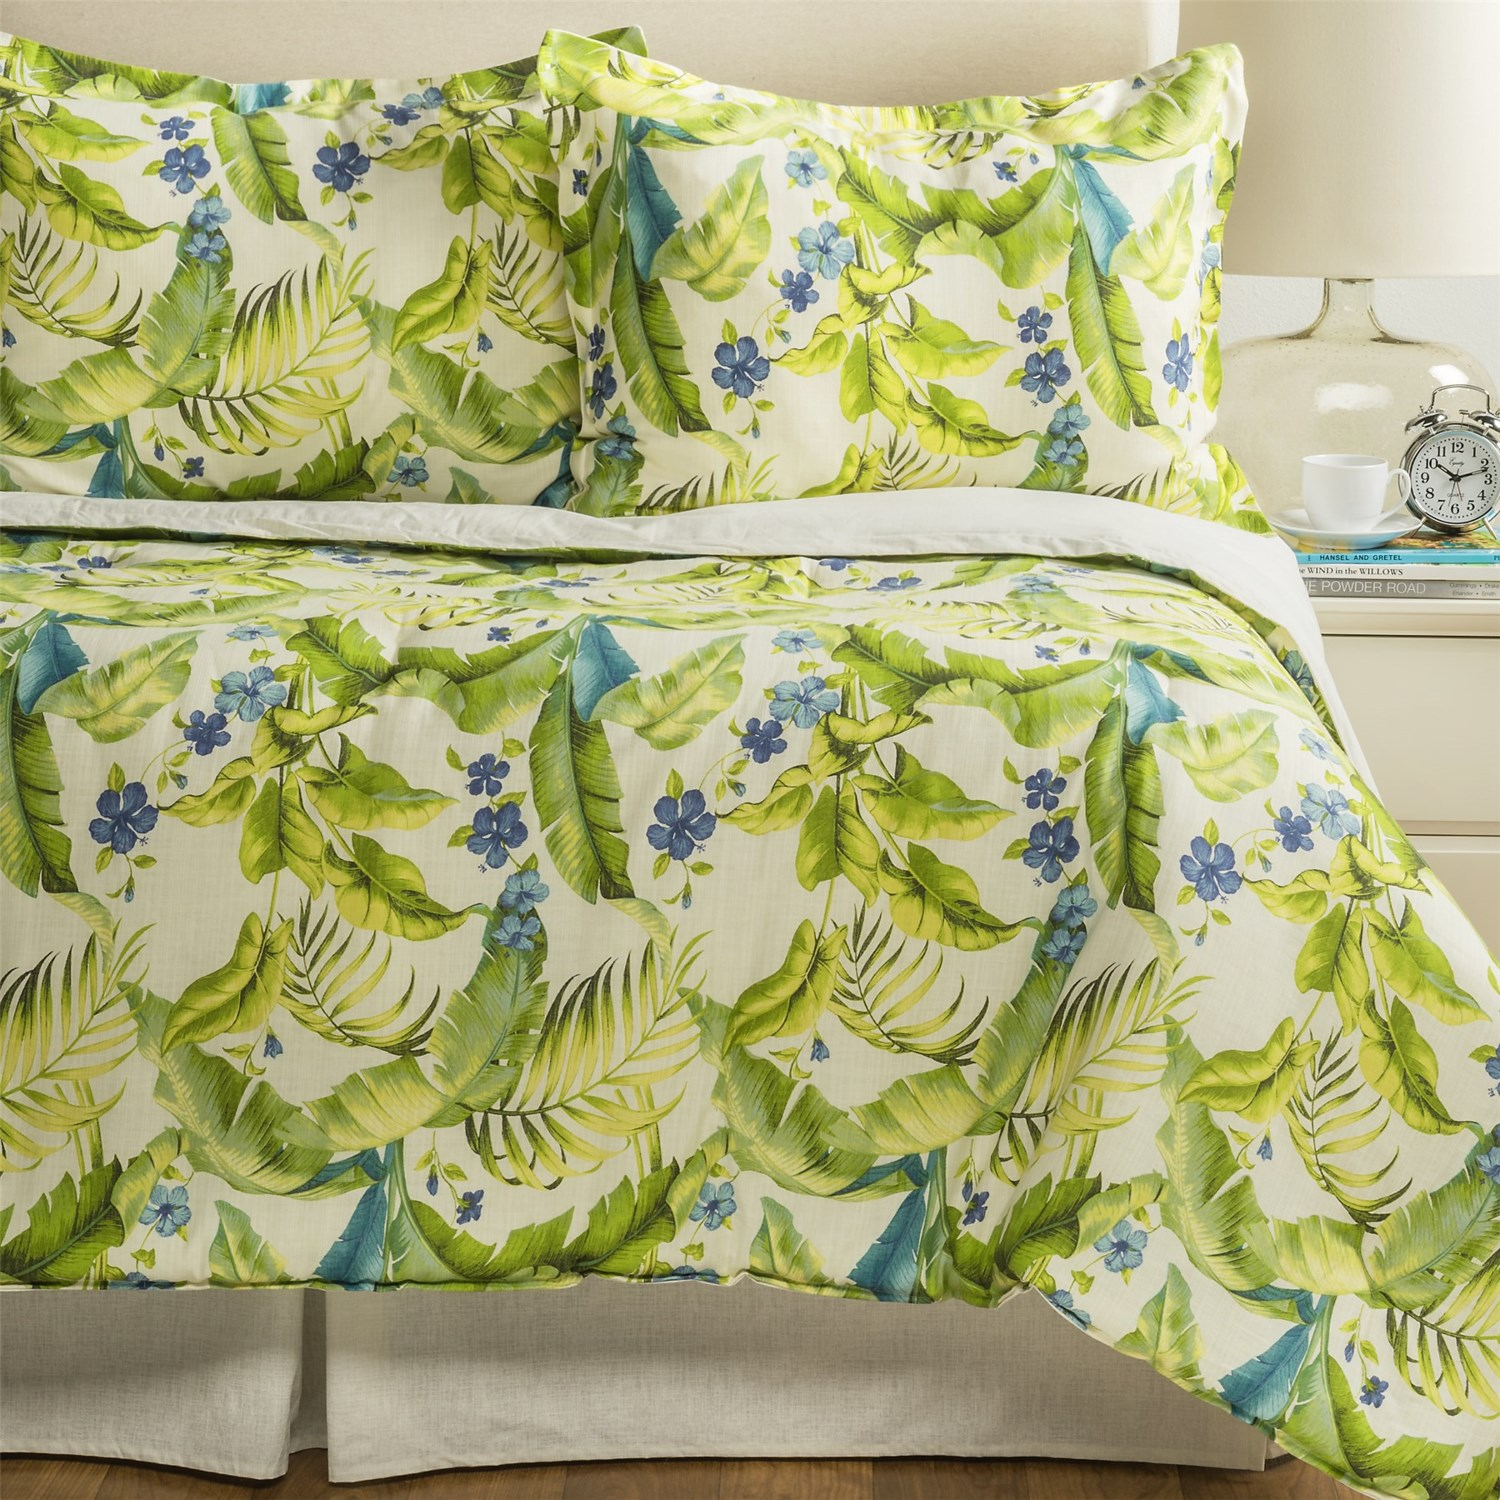 Tommy Bahama Furniture Closeouts #17: Tommy Bahama Blue Palm Comforter Set - Queen In Ivory/Green/Blue ...